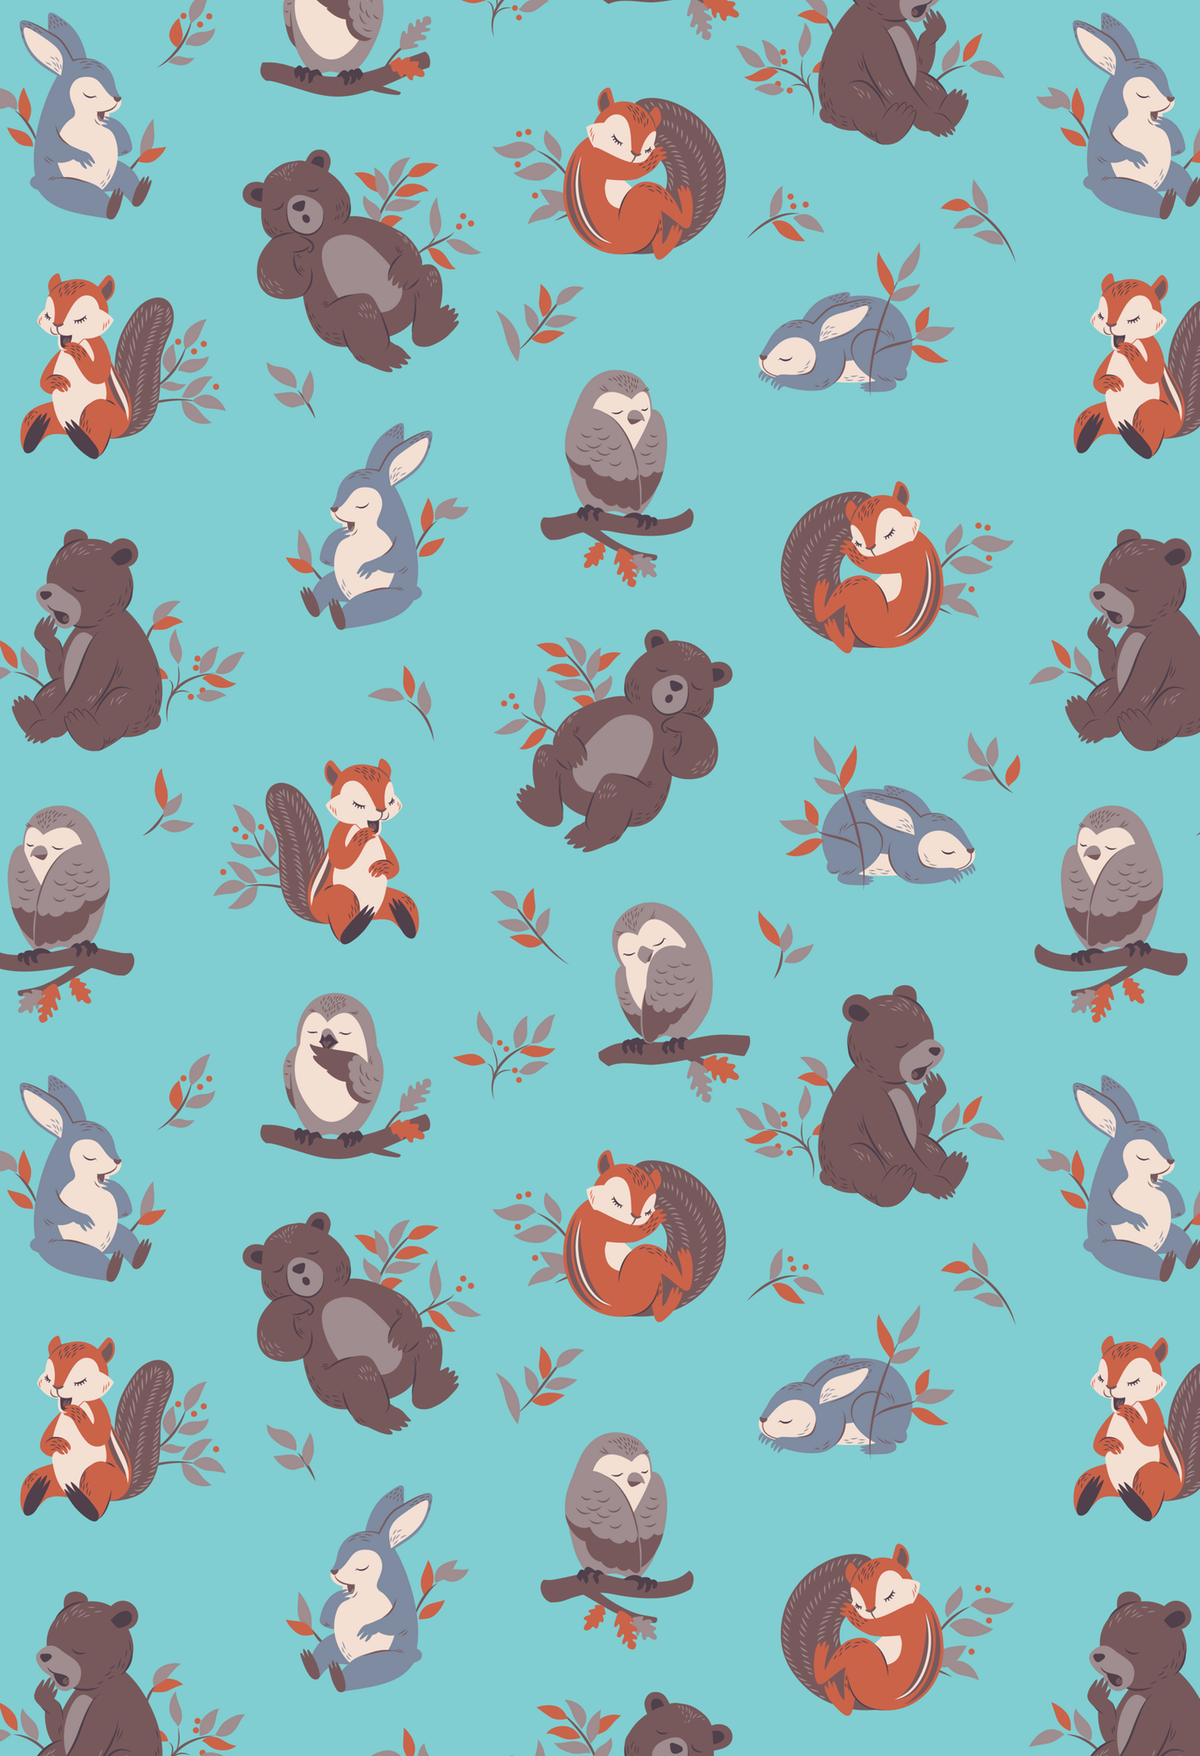 Kids' Weighted Blanket Print